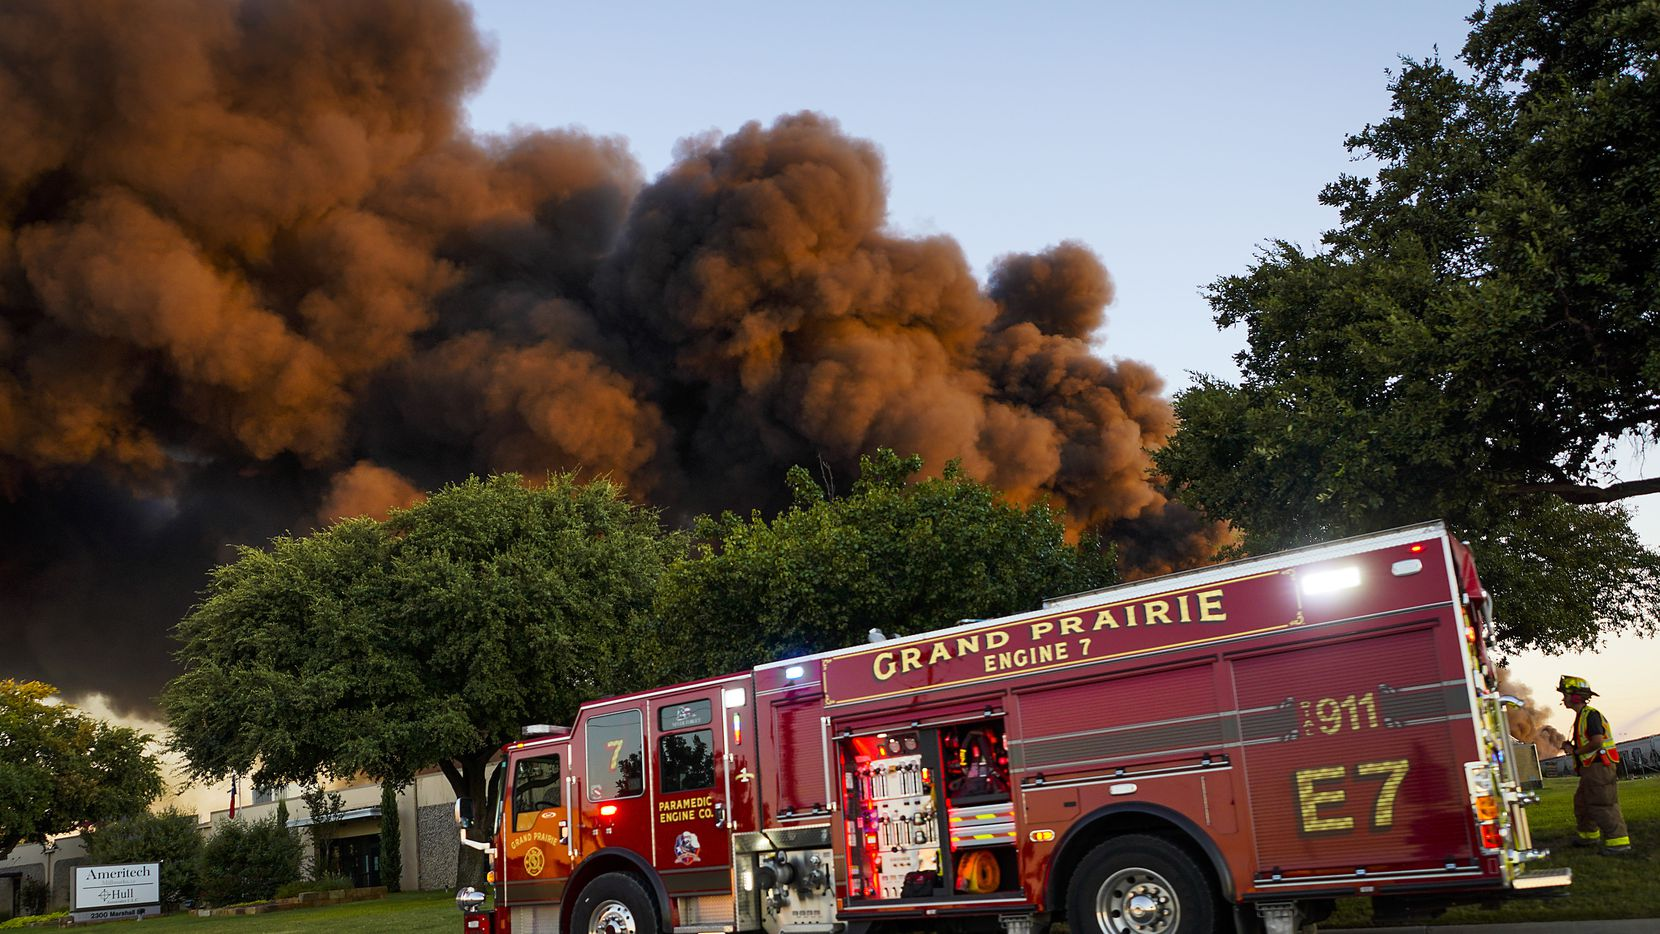 Fire crews battle a massive blaze in an industrial area of Grand Prairie just before sunrise on Wednesday.